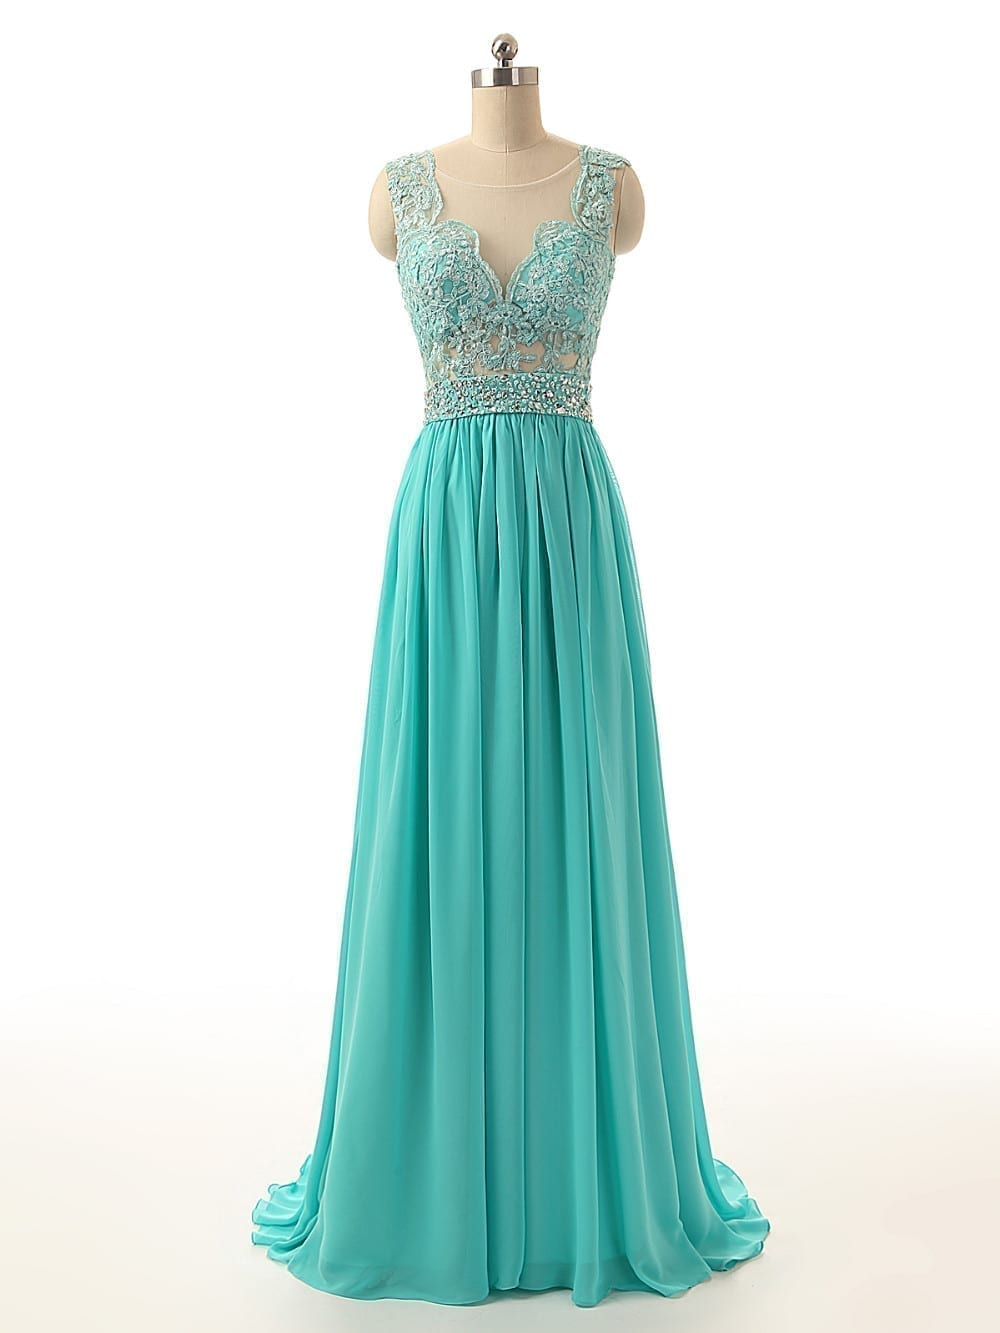 Sheer Neck Back See Through Turquoise Long Bridesmaid Dress